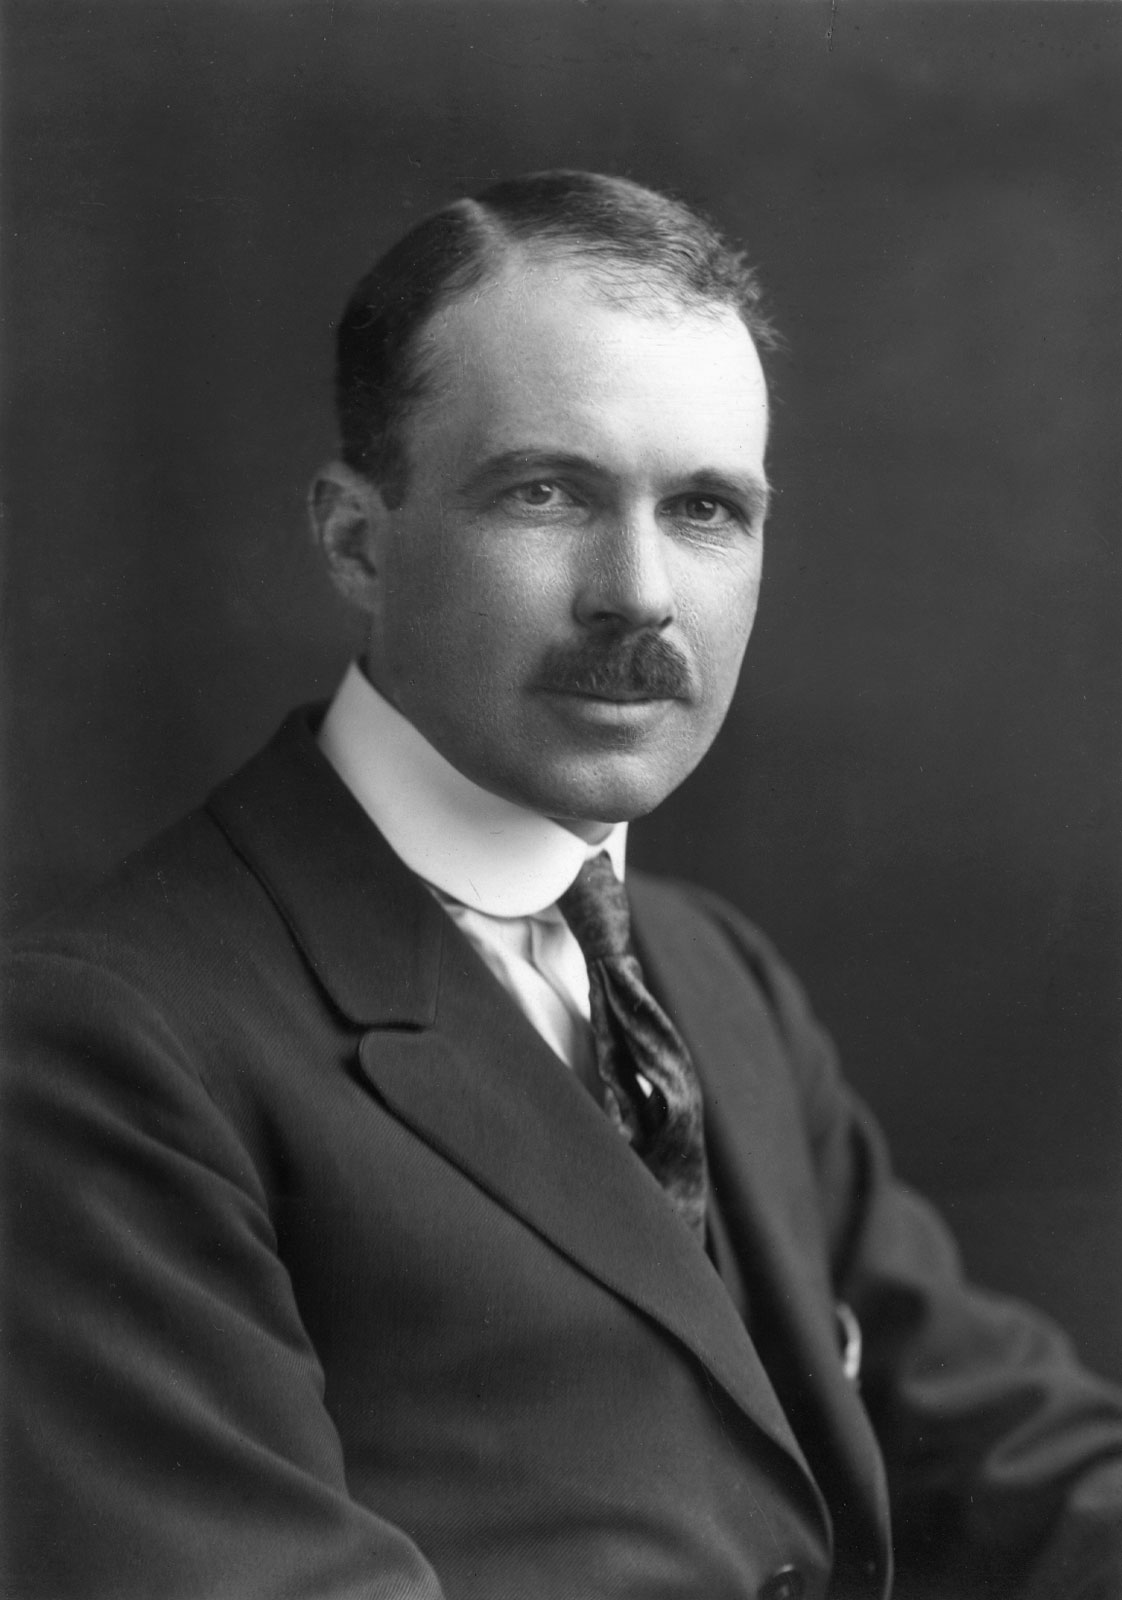 Sir William Lawrence Bragg, câştigător al Premiului Nobel